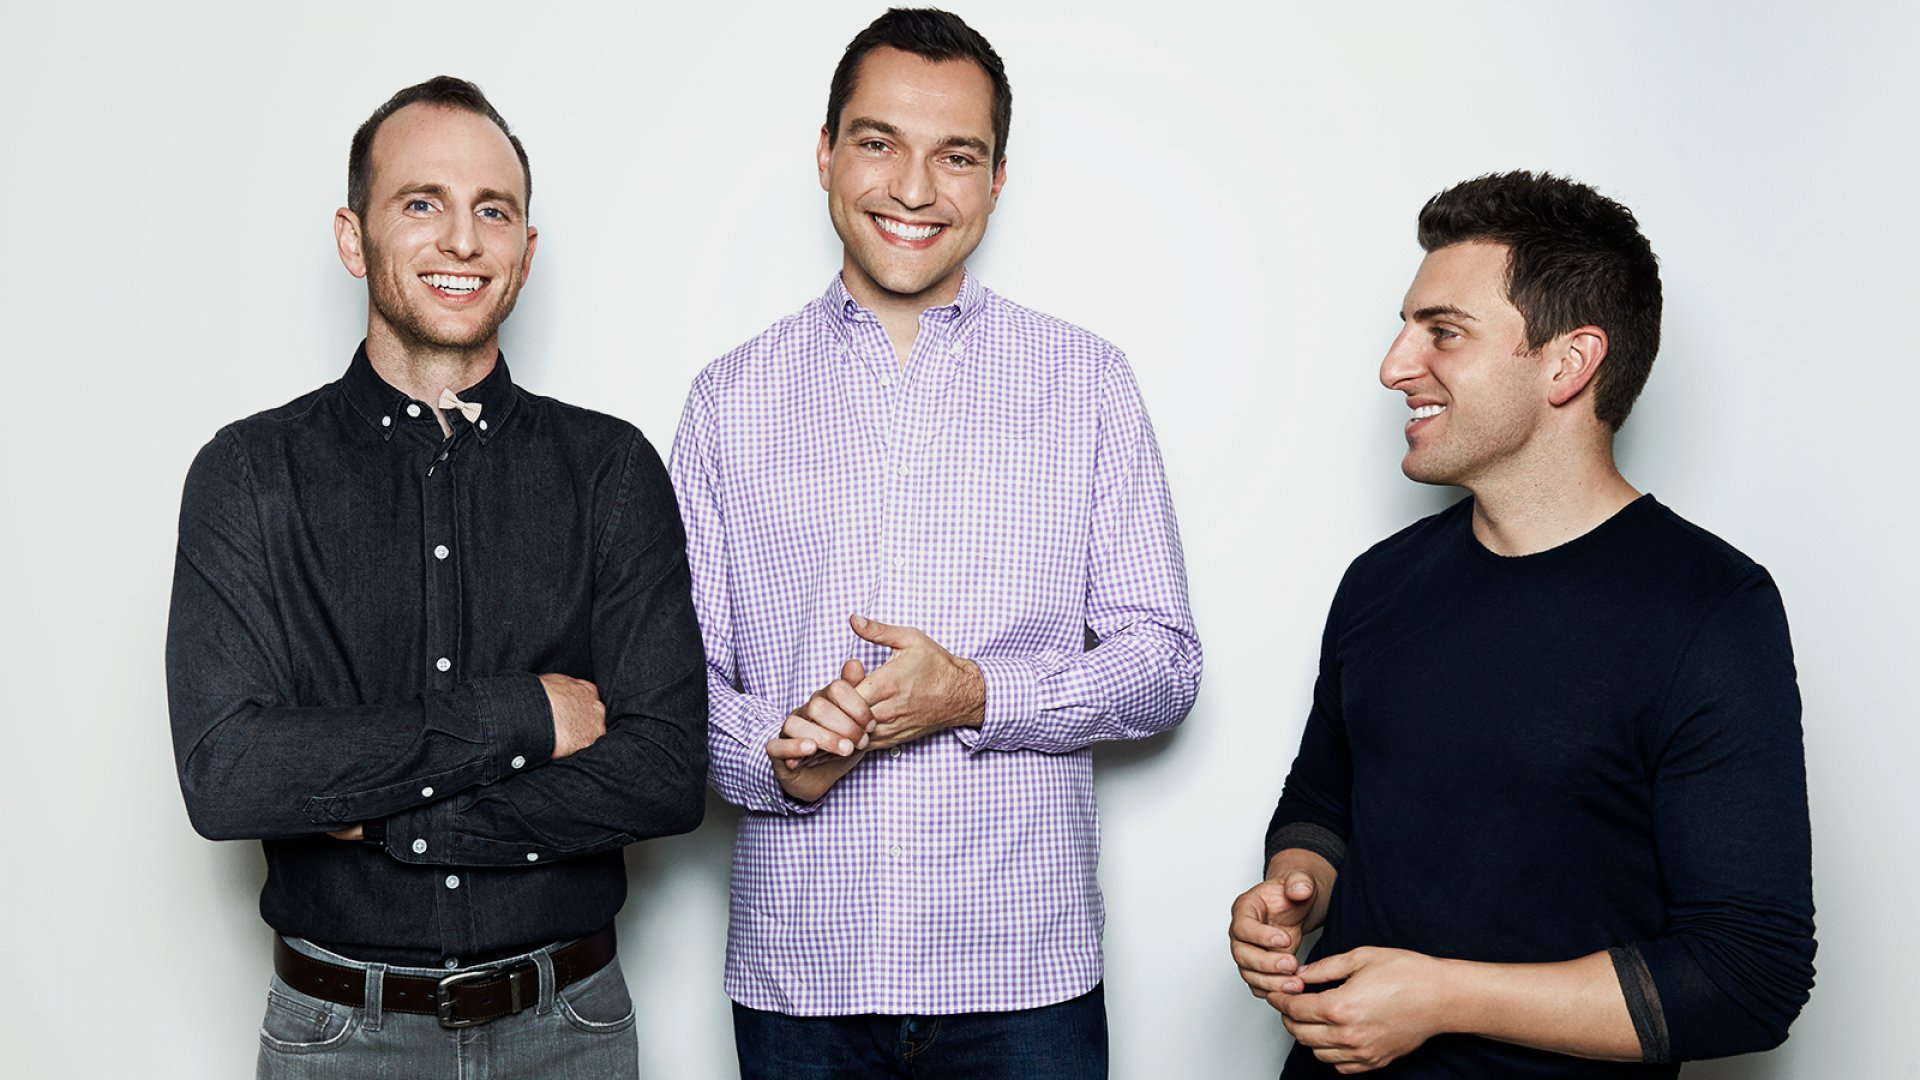 Joe Gebbia, Nathan Blecharczyk, and Brian Chesky.